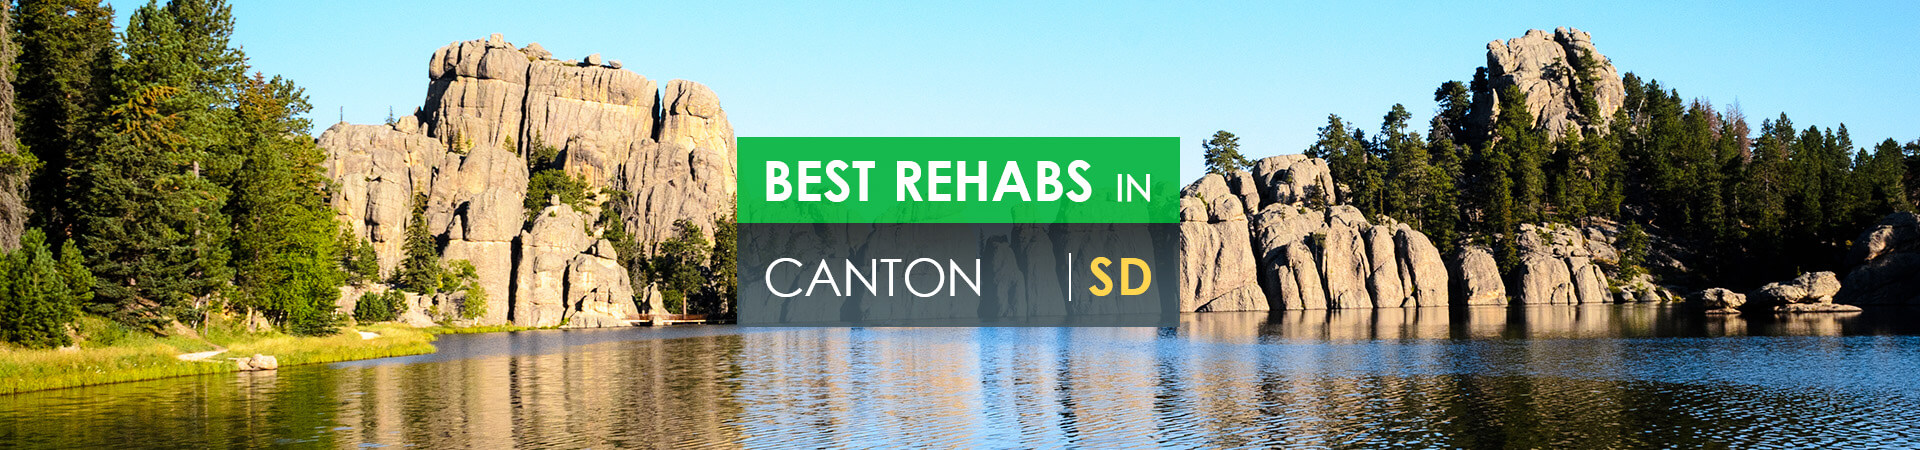 Best rehabs in Canton, SD